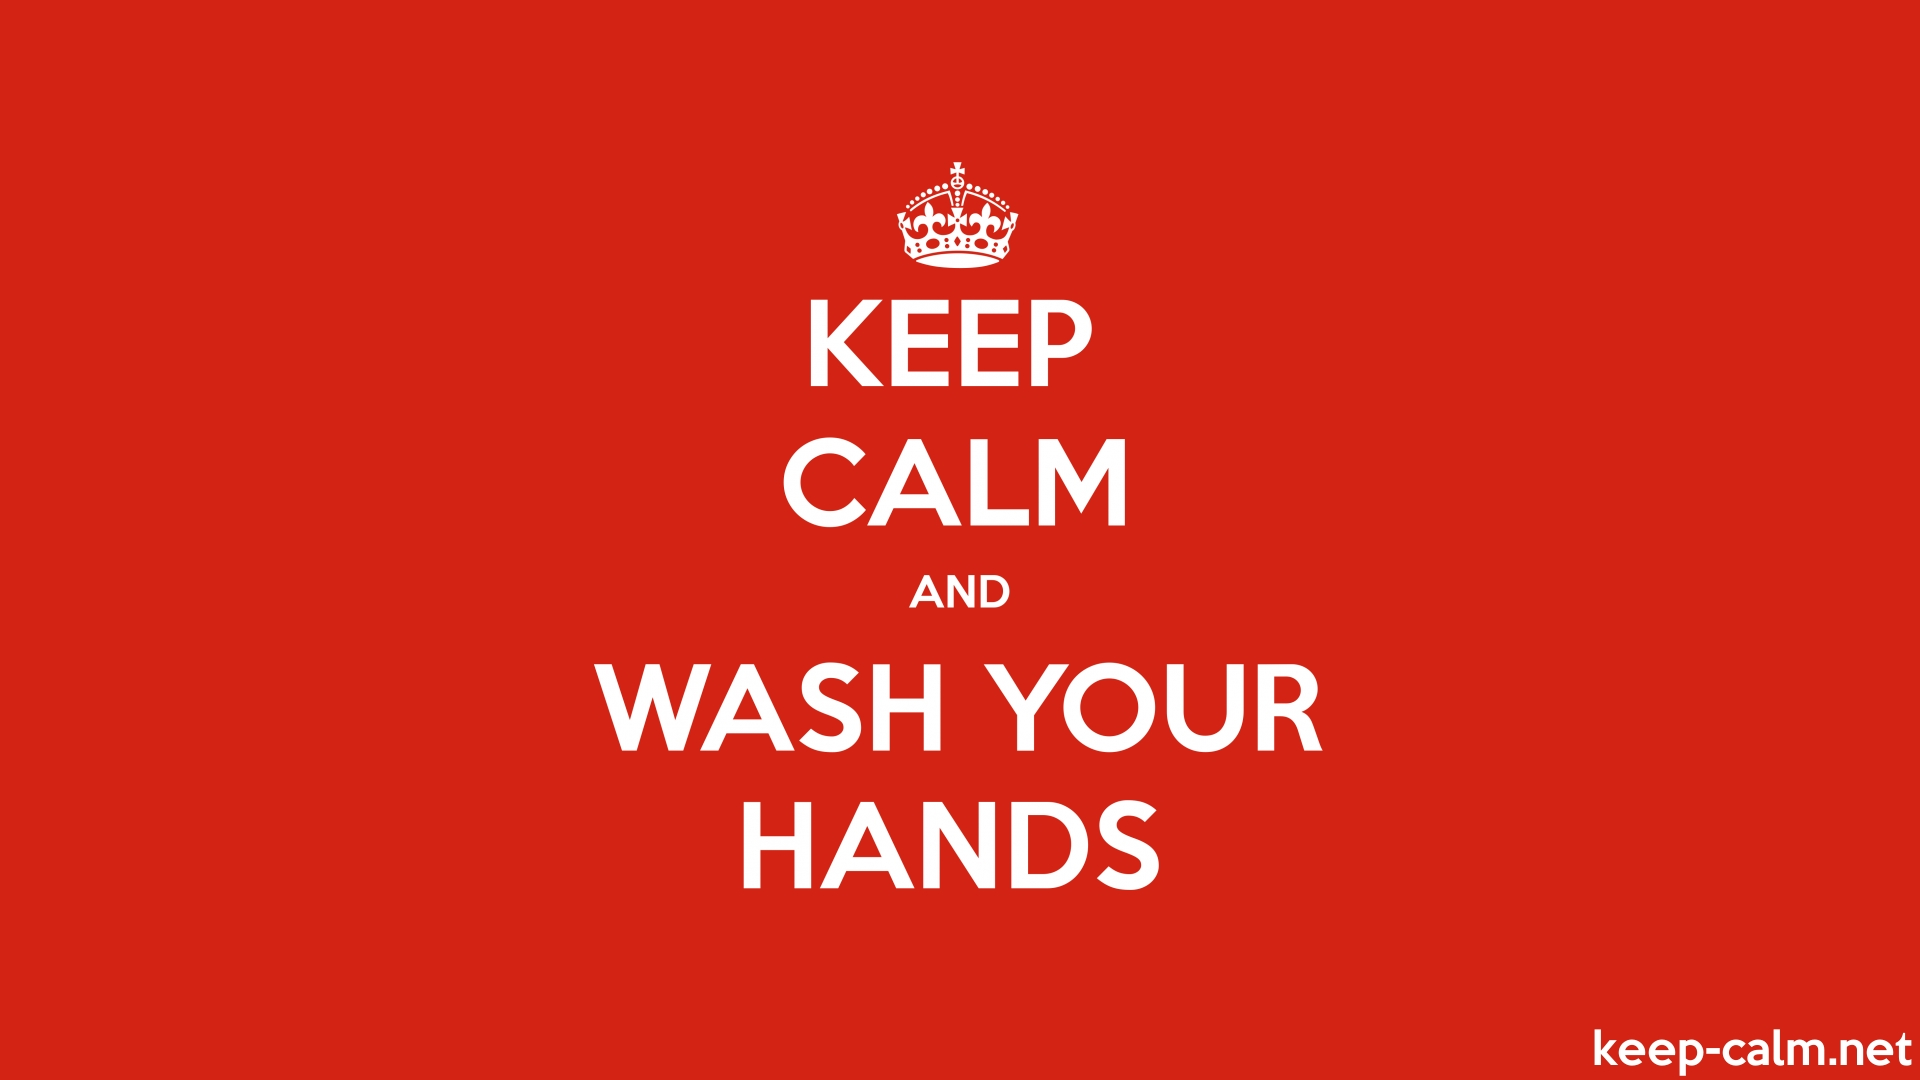 Keep Calm And Wash Your Hands Keep Calm Net